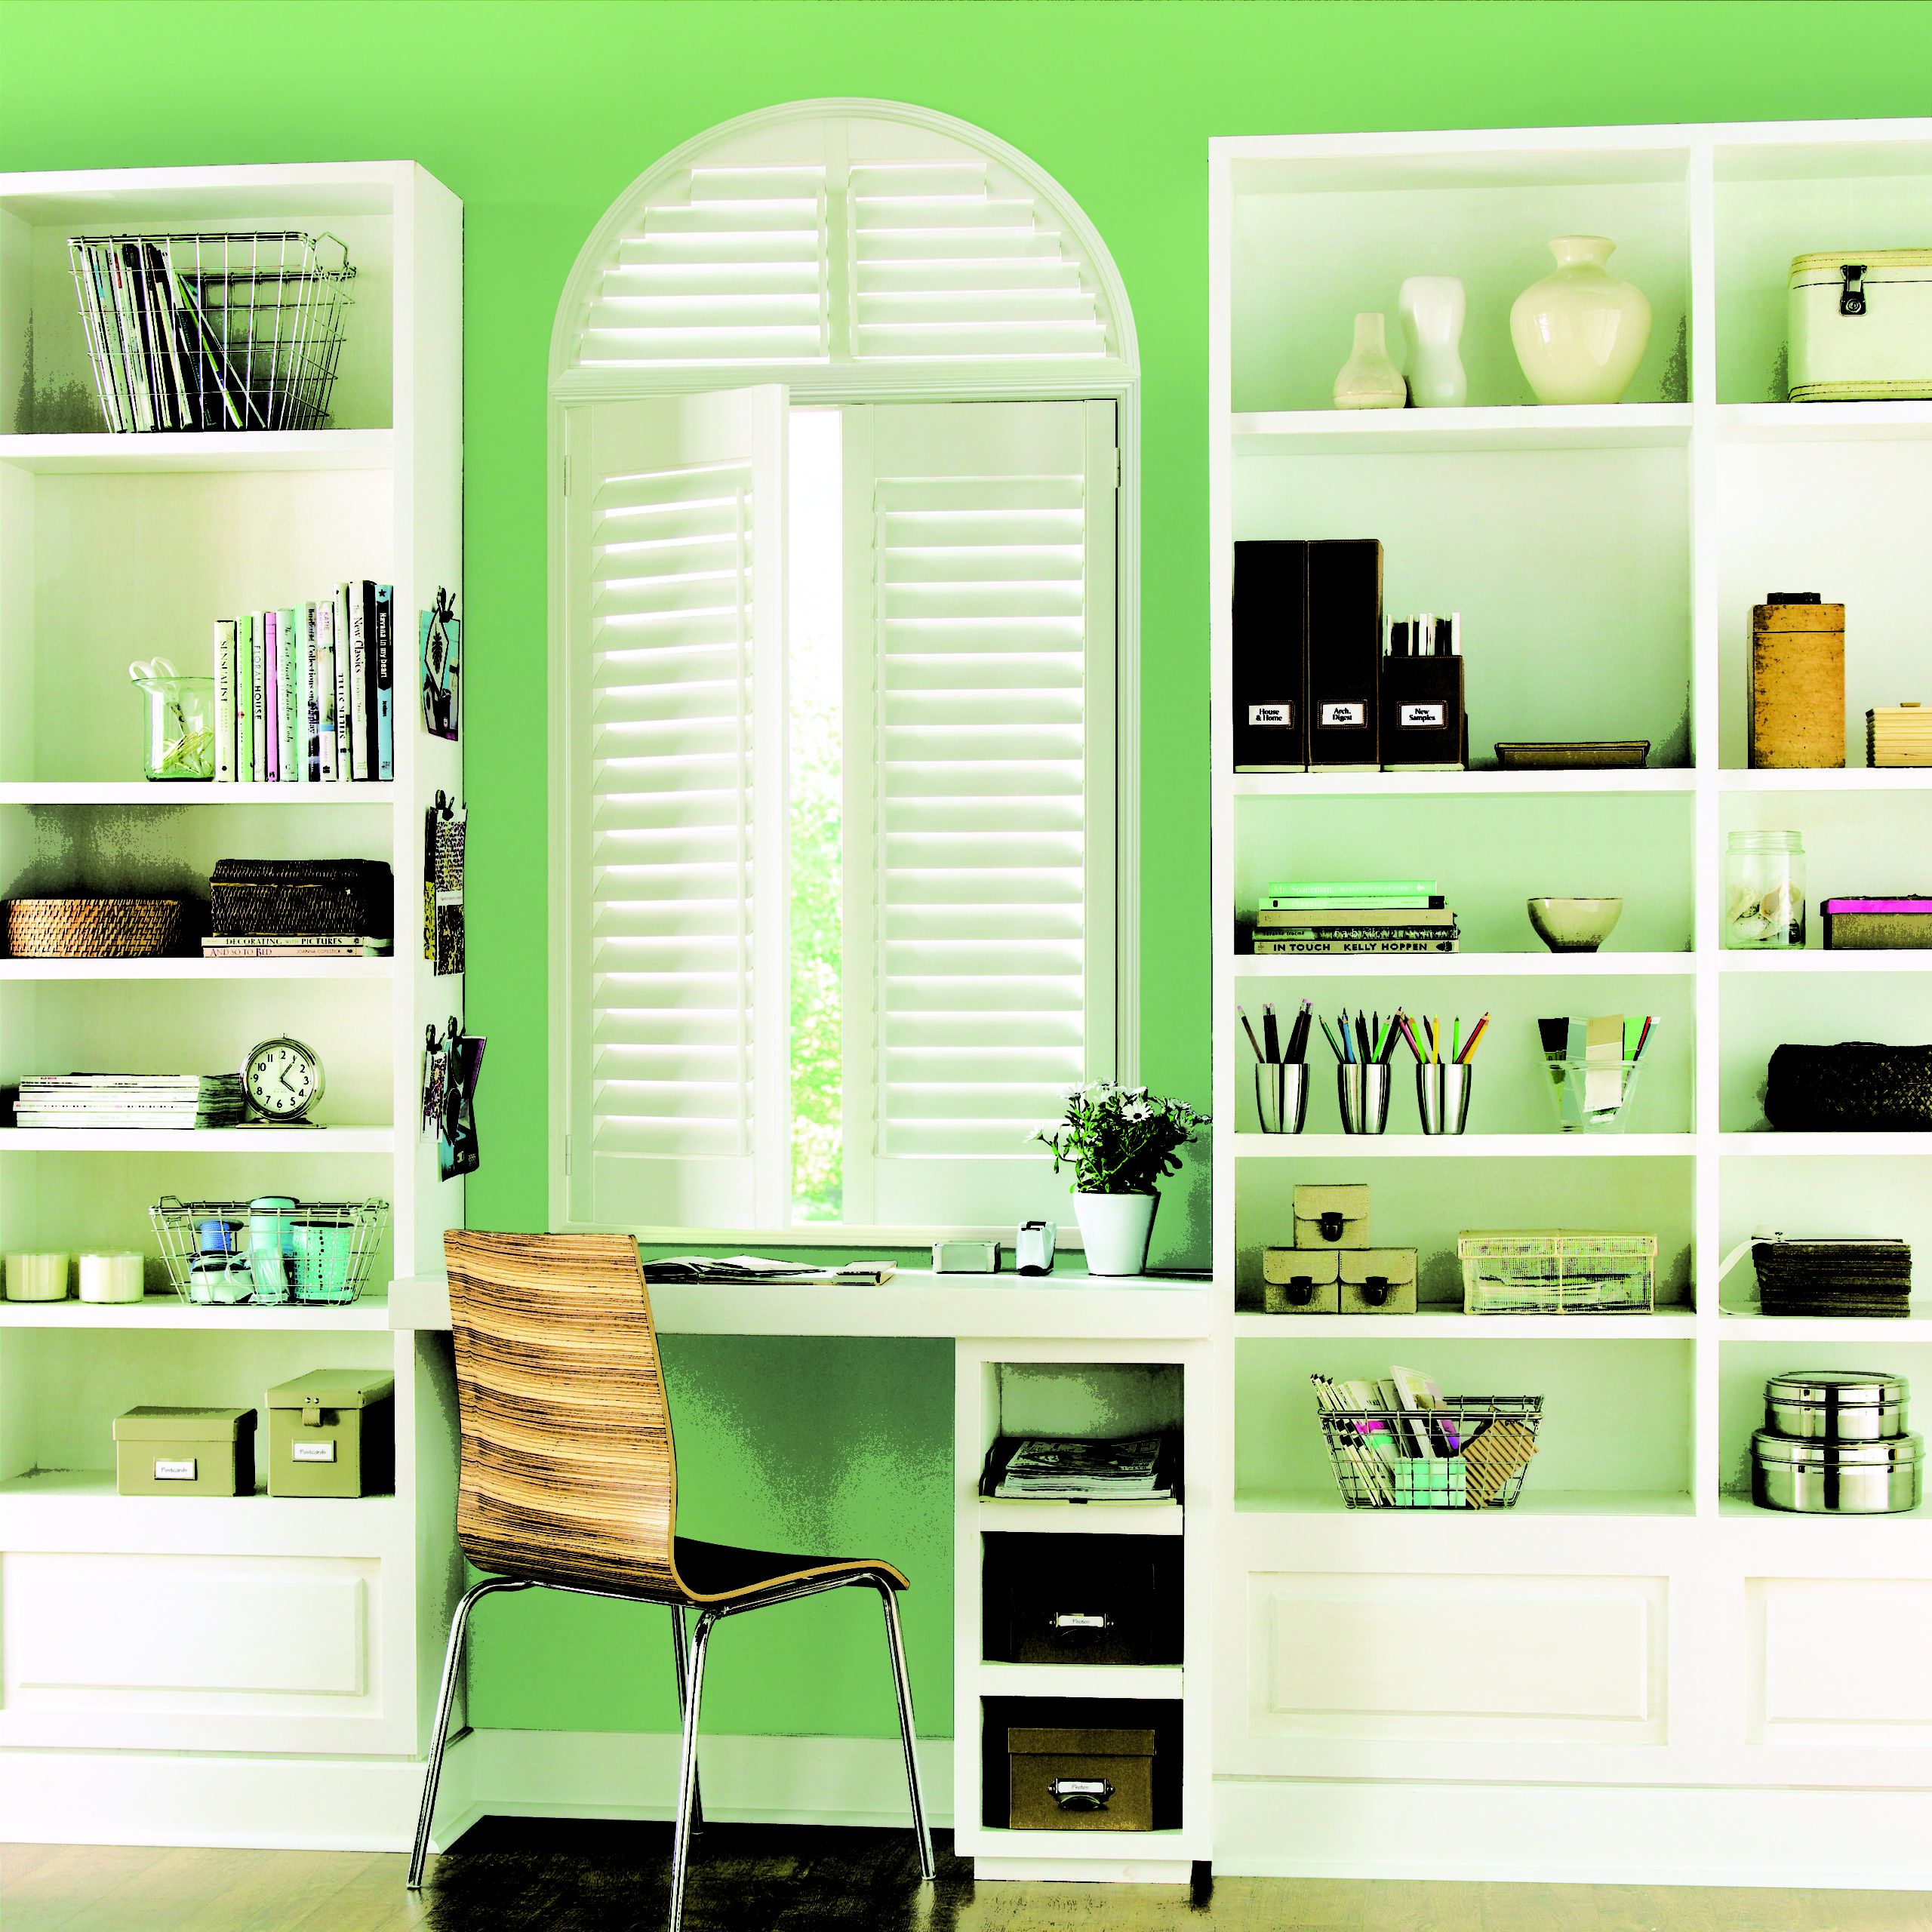 style icon Iris Apfel palm beach shutters